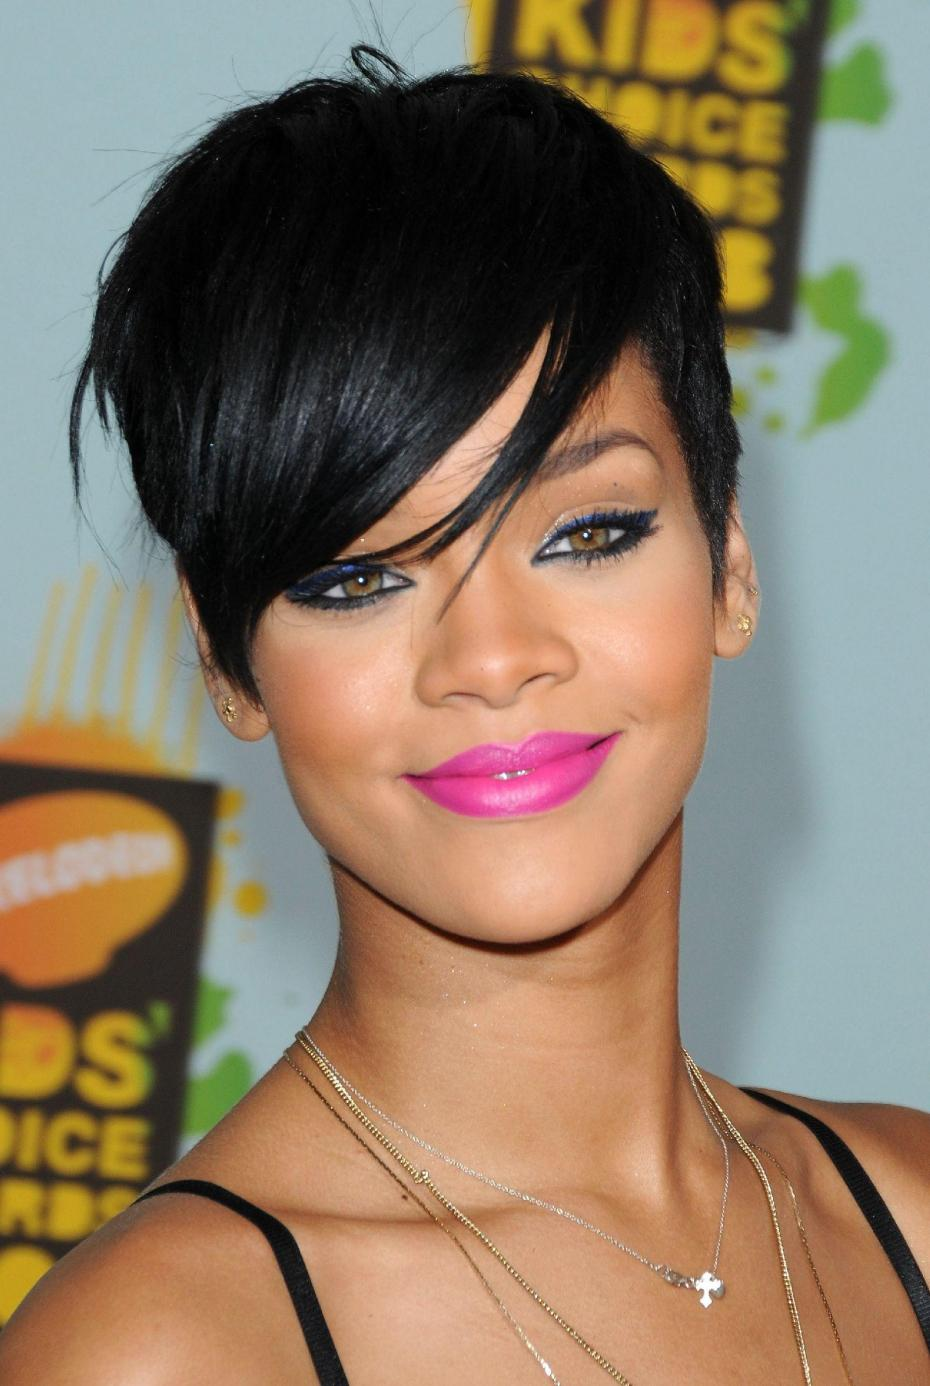 Rihanna Featuring A Pixie Haircut Women Hairstyles